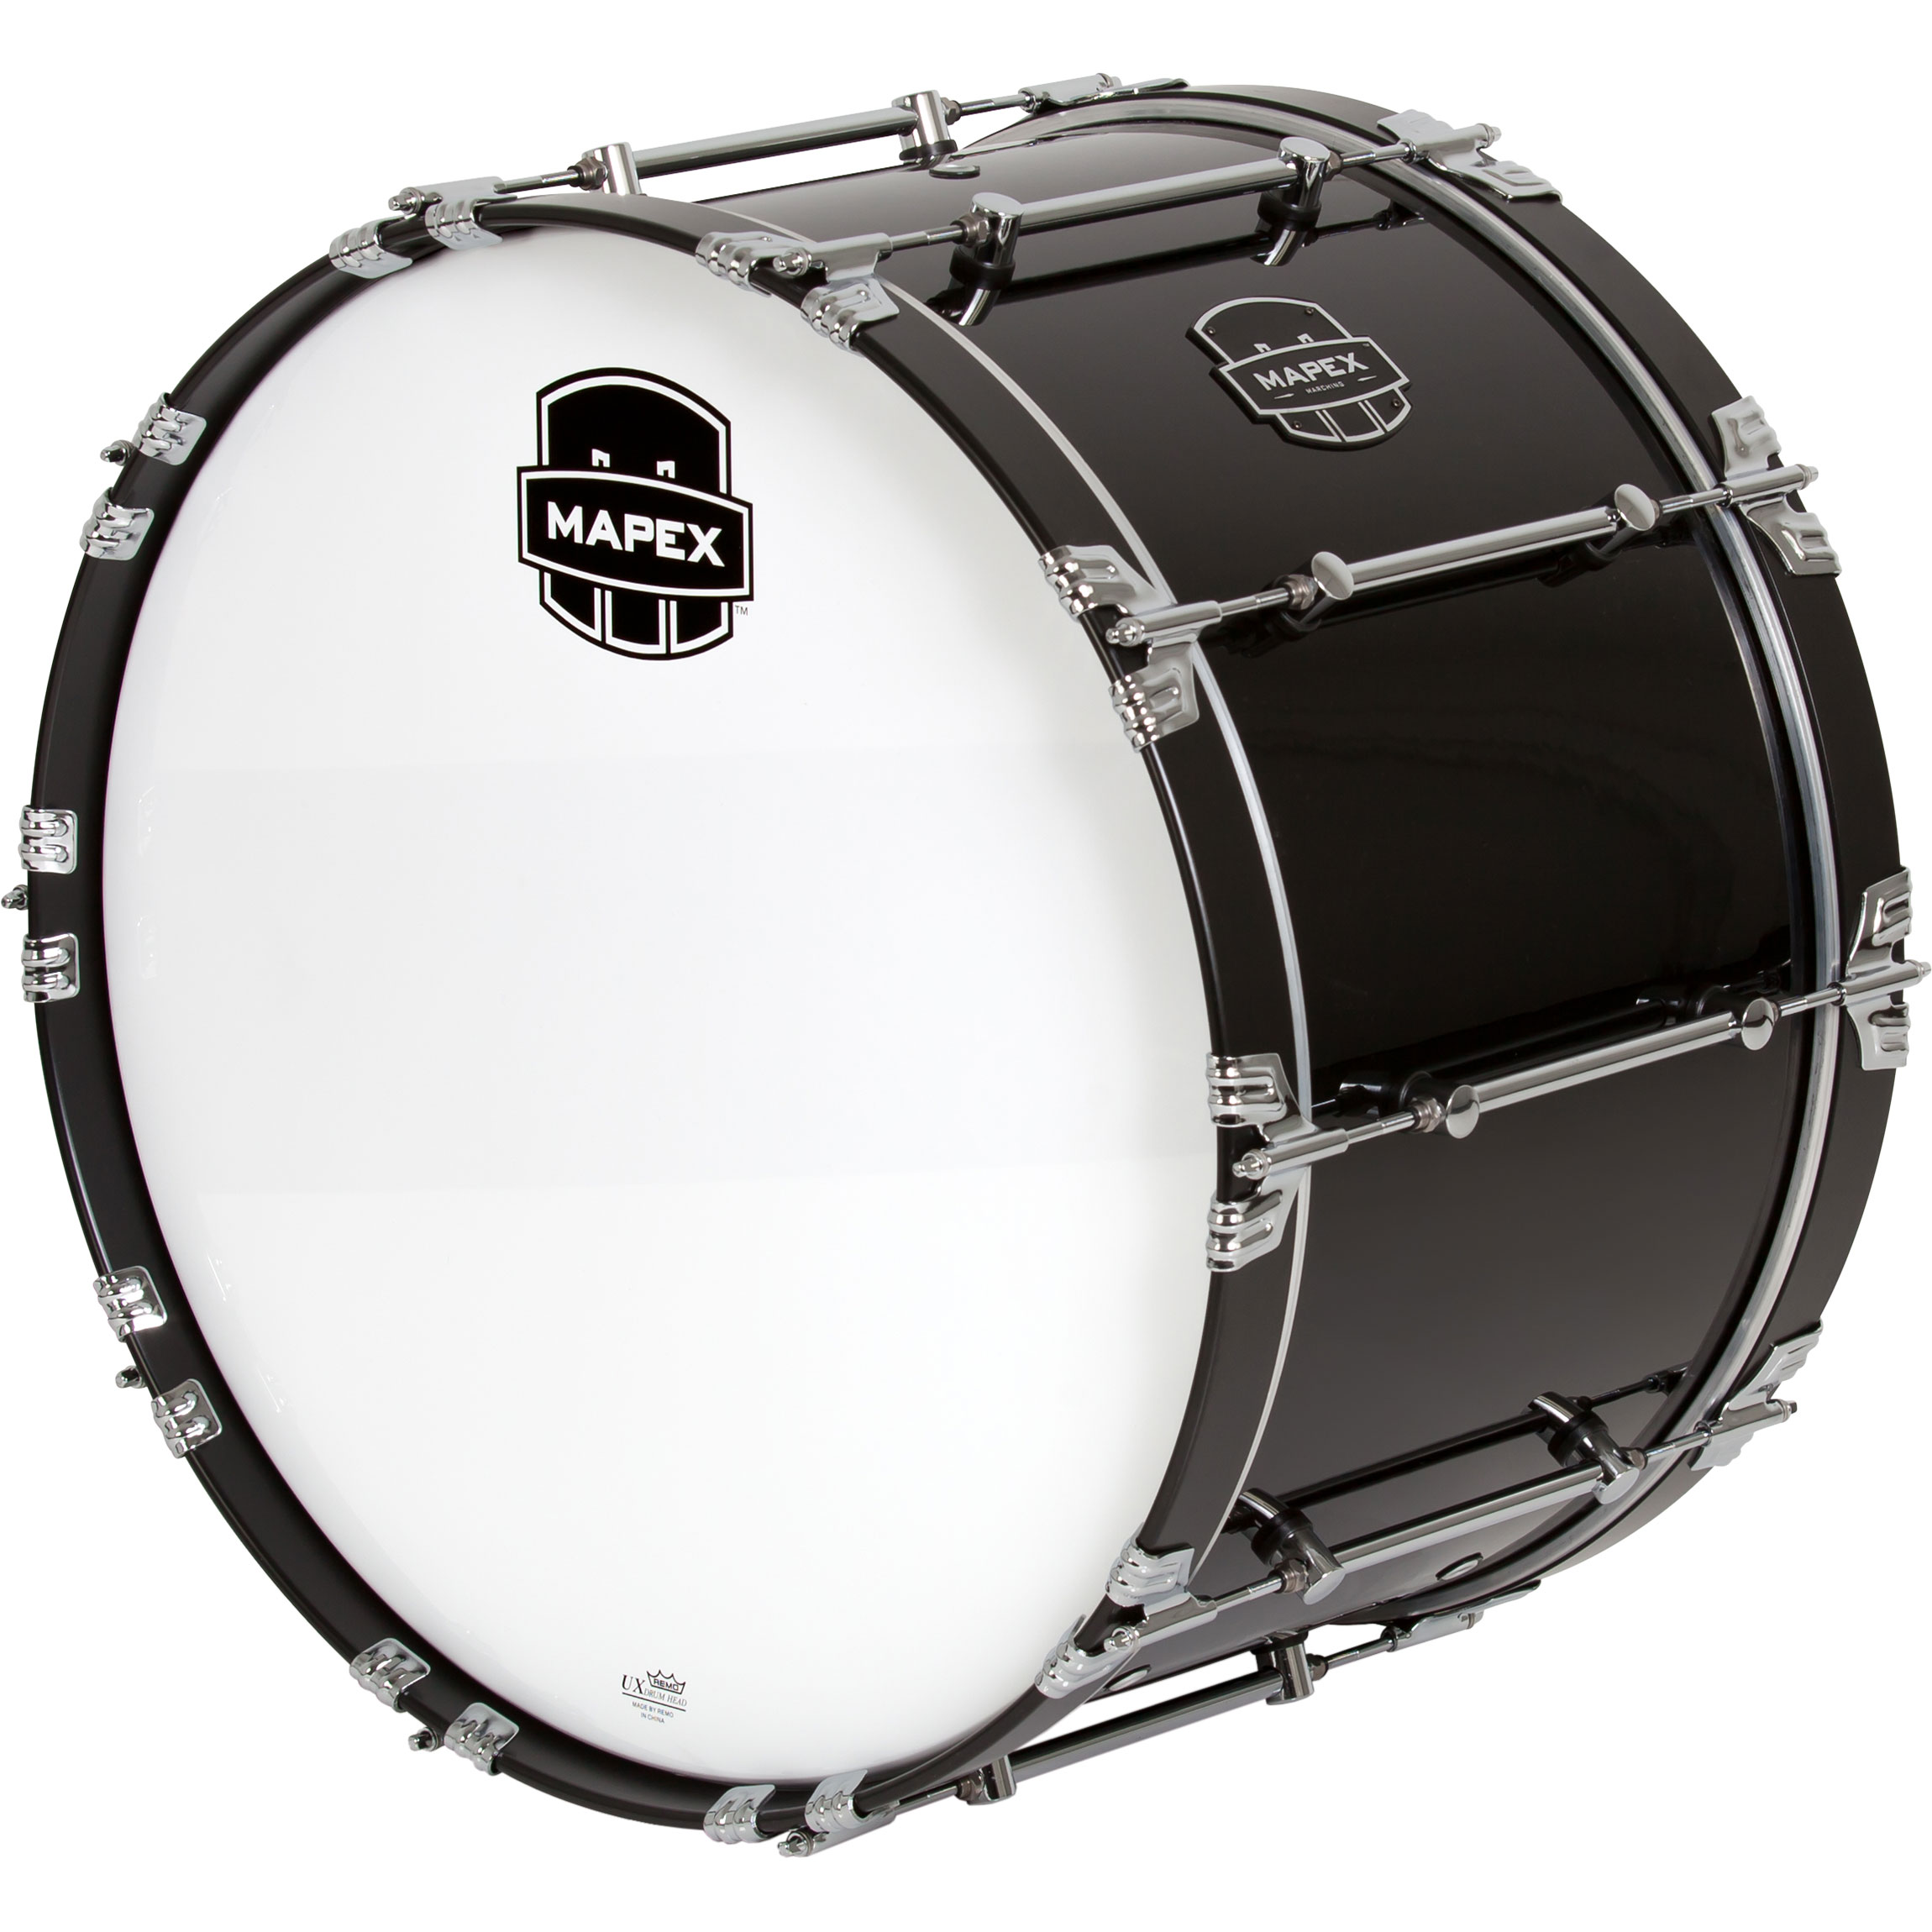 "Mapex 24"" x 14"" Quantum Mark II Marching Bass Drum in Gloss Black"